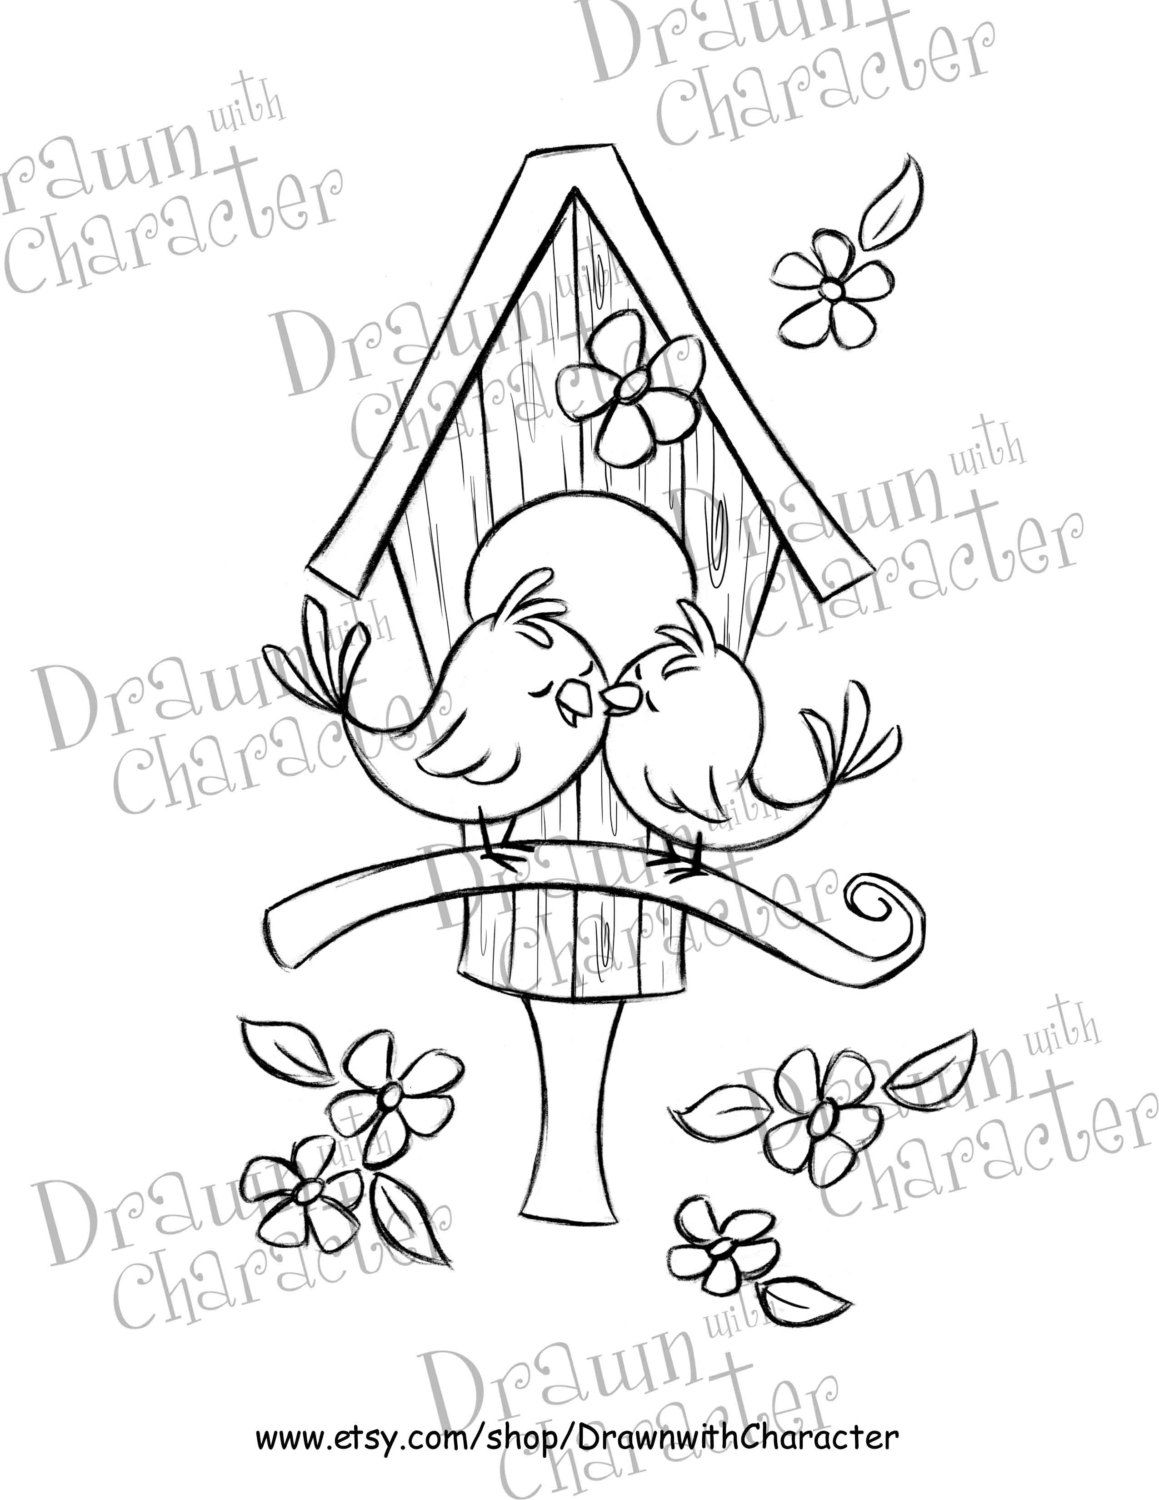 love bird house drawings - Google Search | Doodling gardens ...